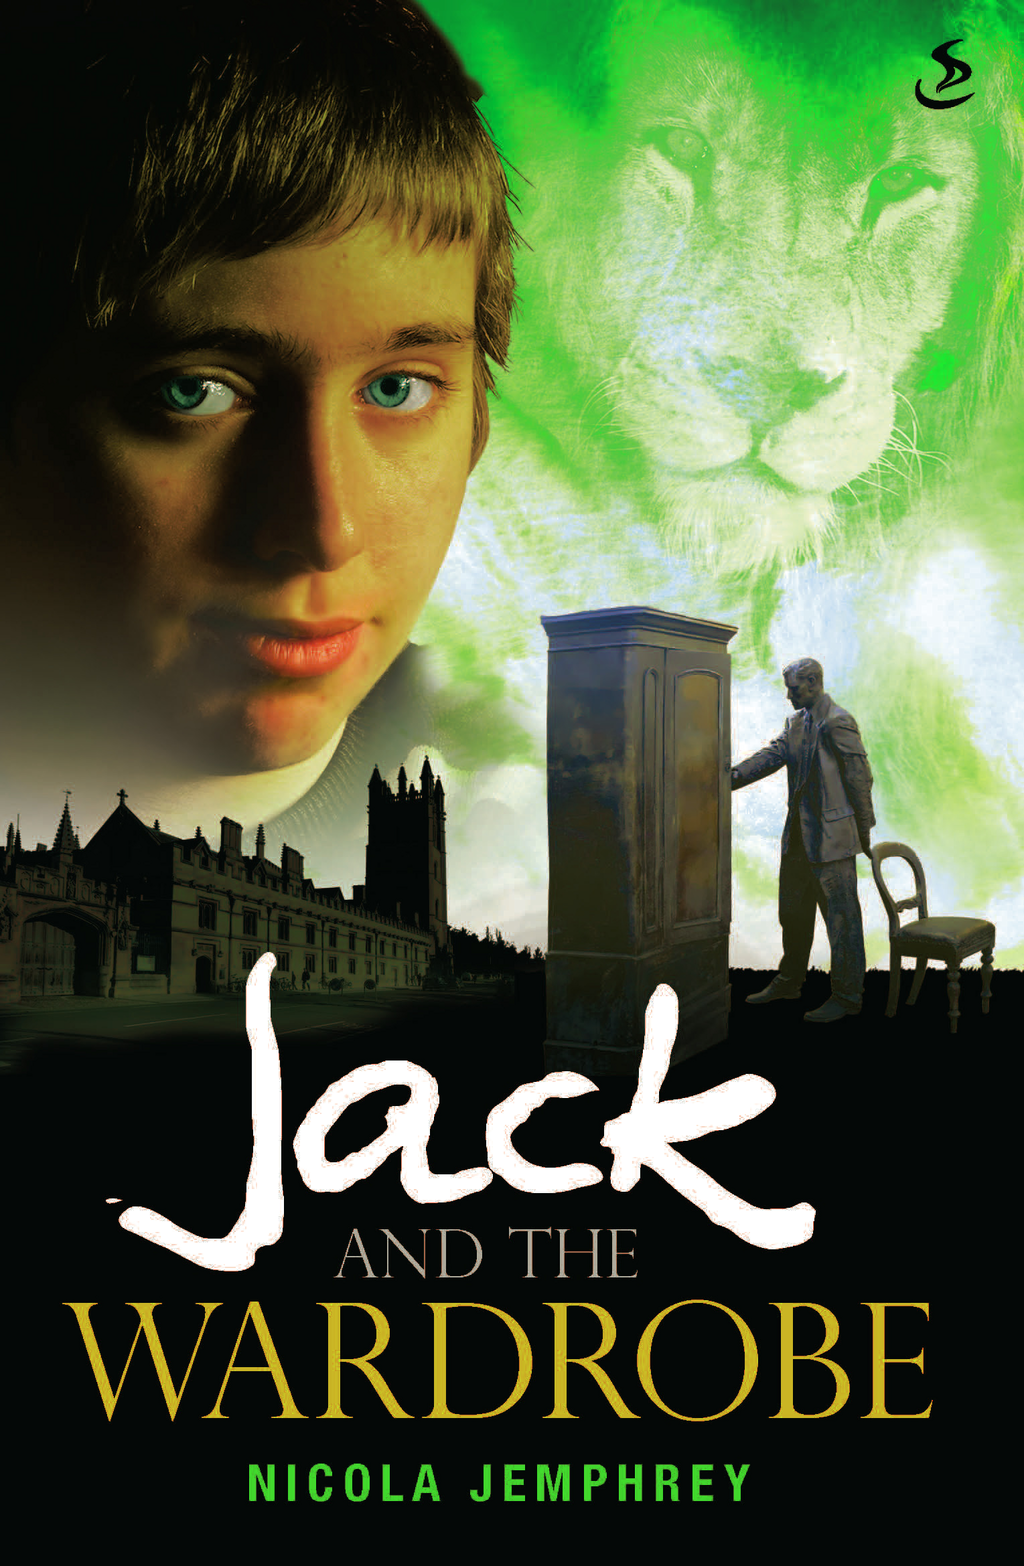 Jack and the Wardrobe By: Nicola Jemphrey